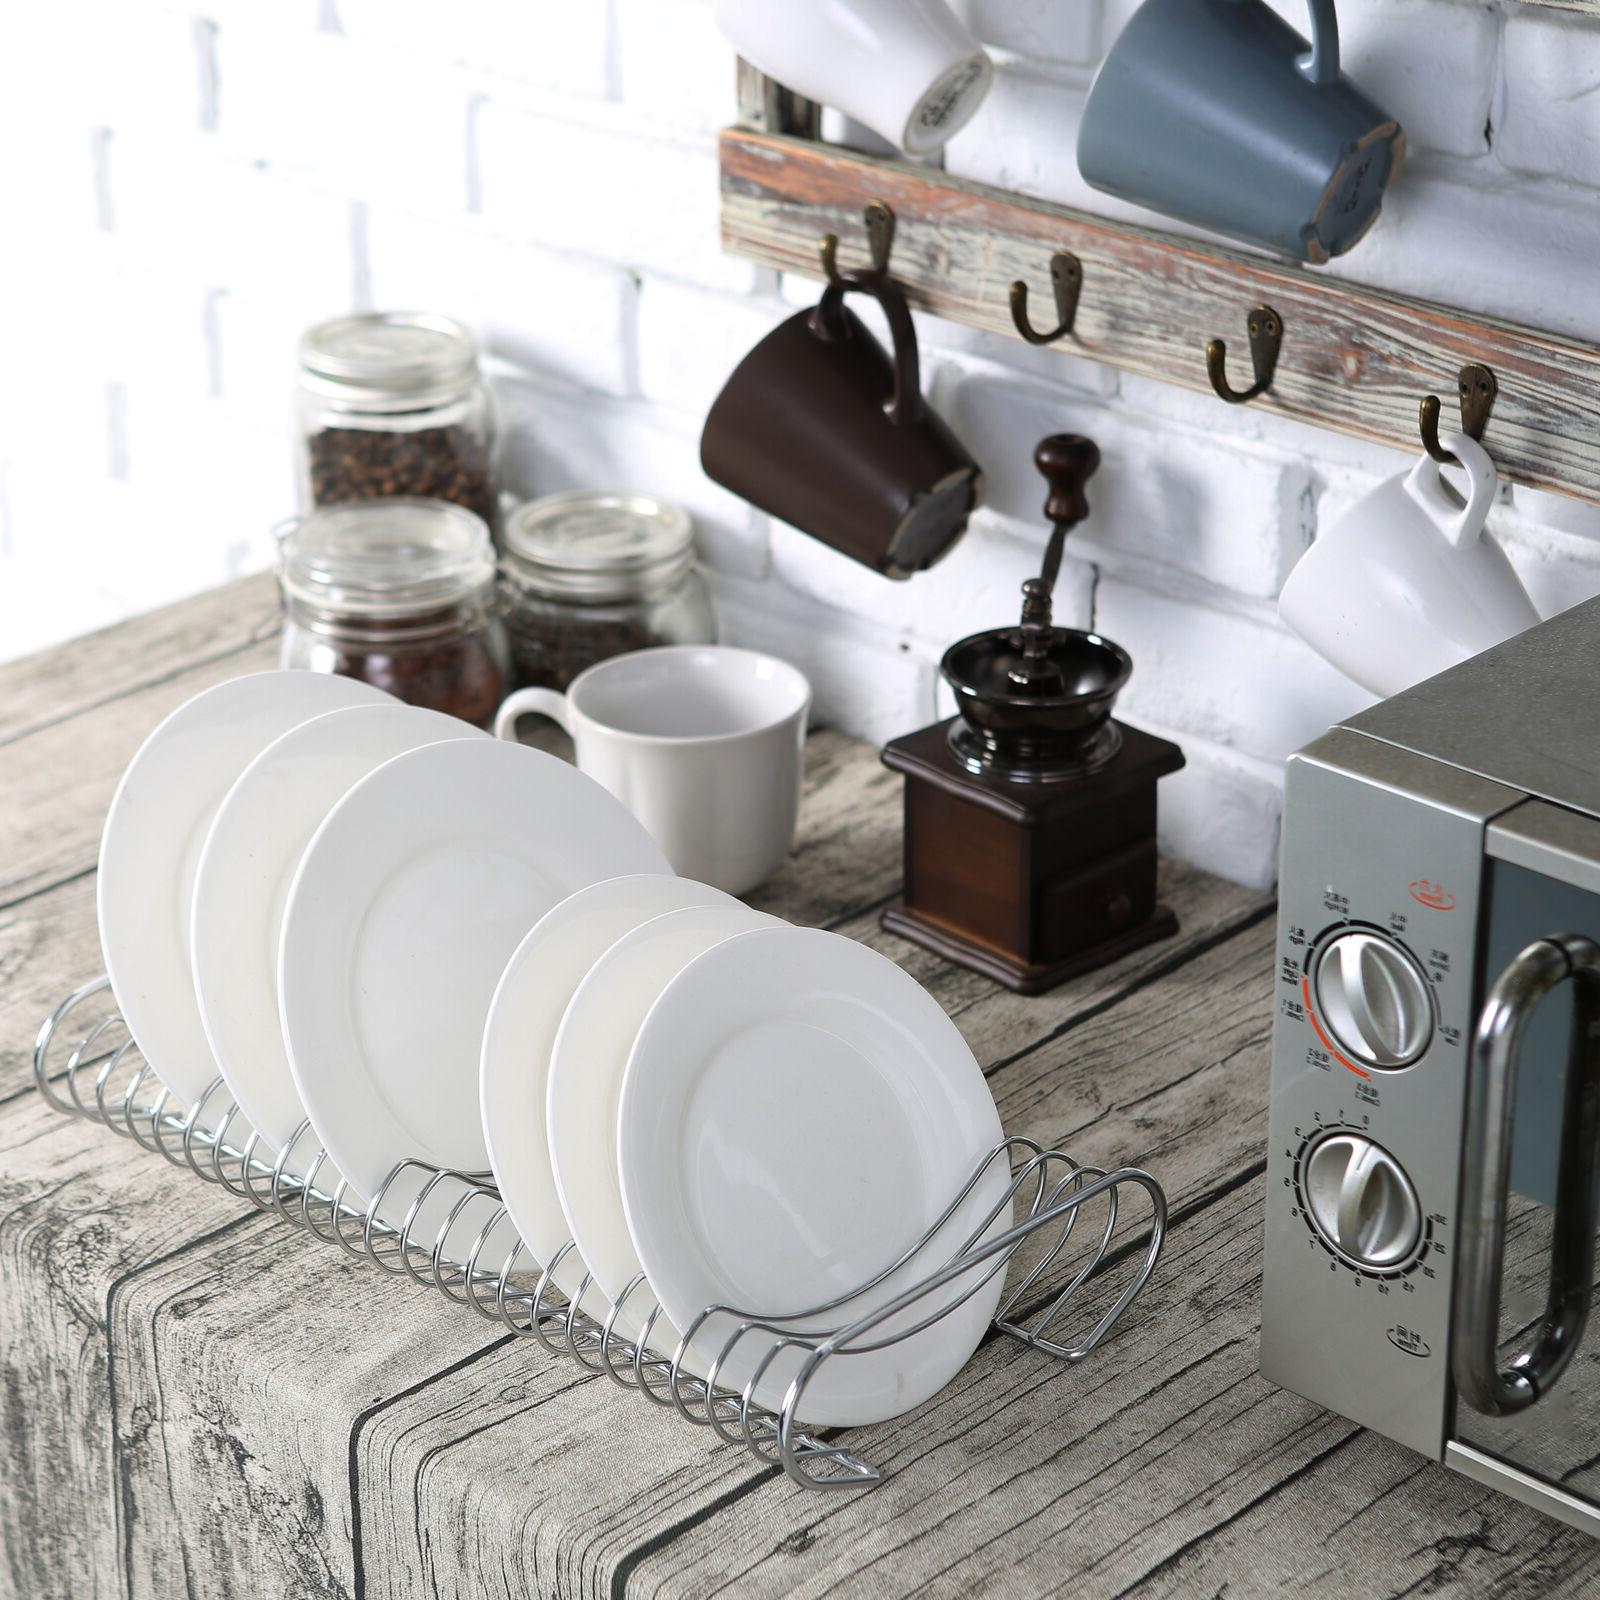 Kitchen Plate Organizer and Rack, Chrome-Plated